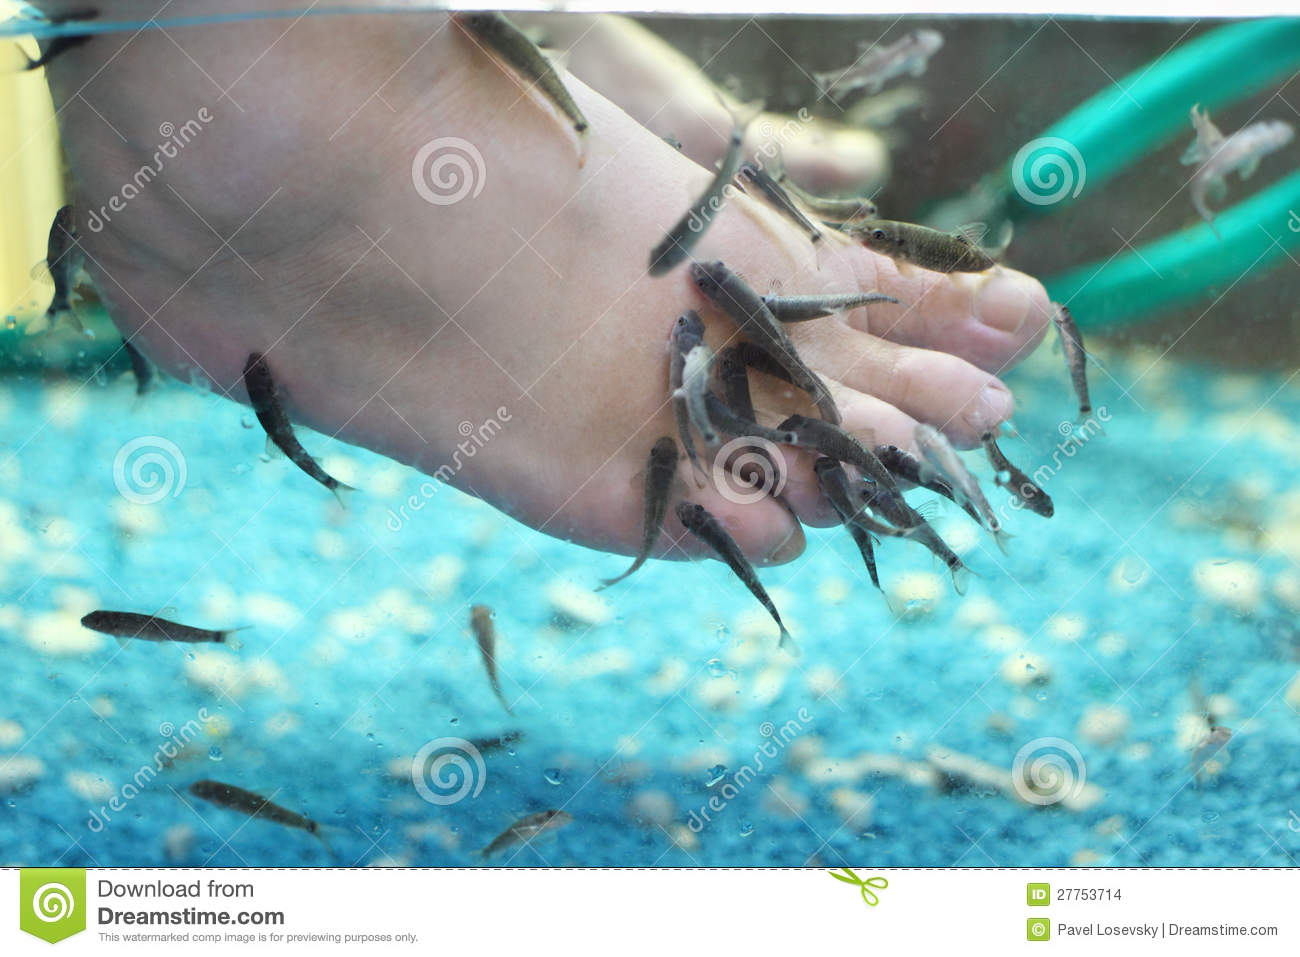 Lot of small fish eat old skin on children feet stock for Dreaming of eating fish